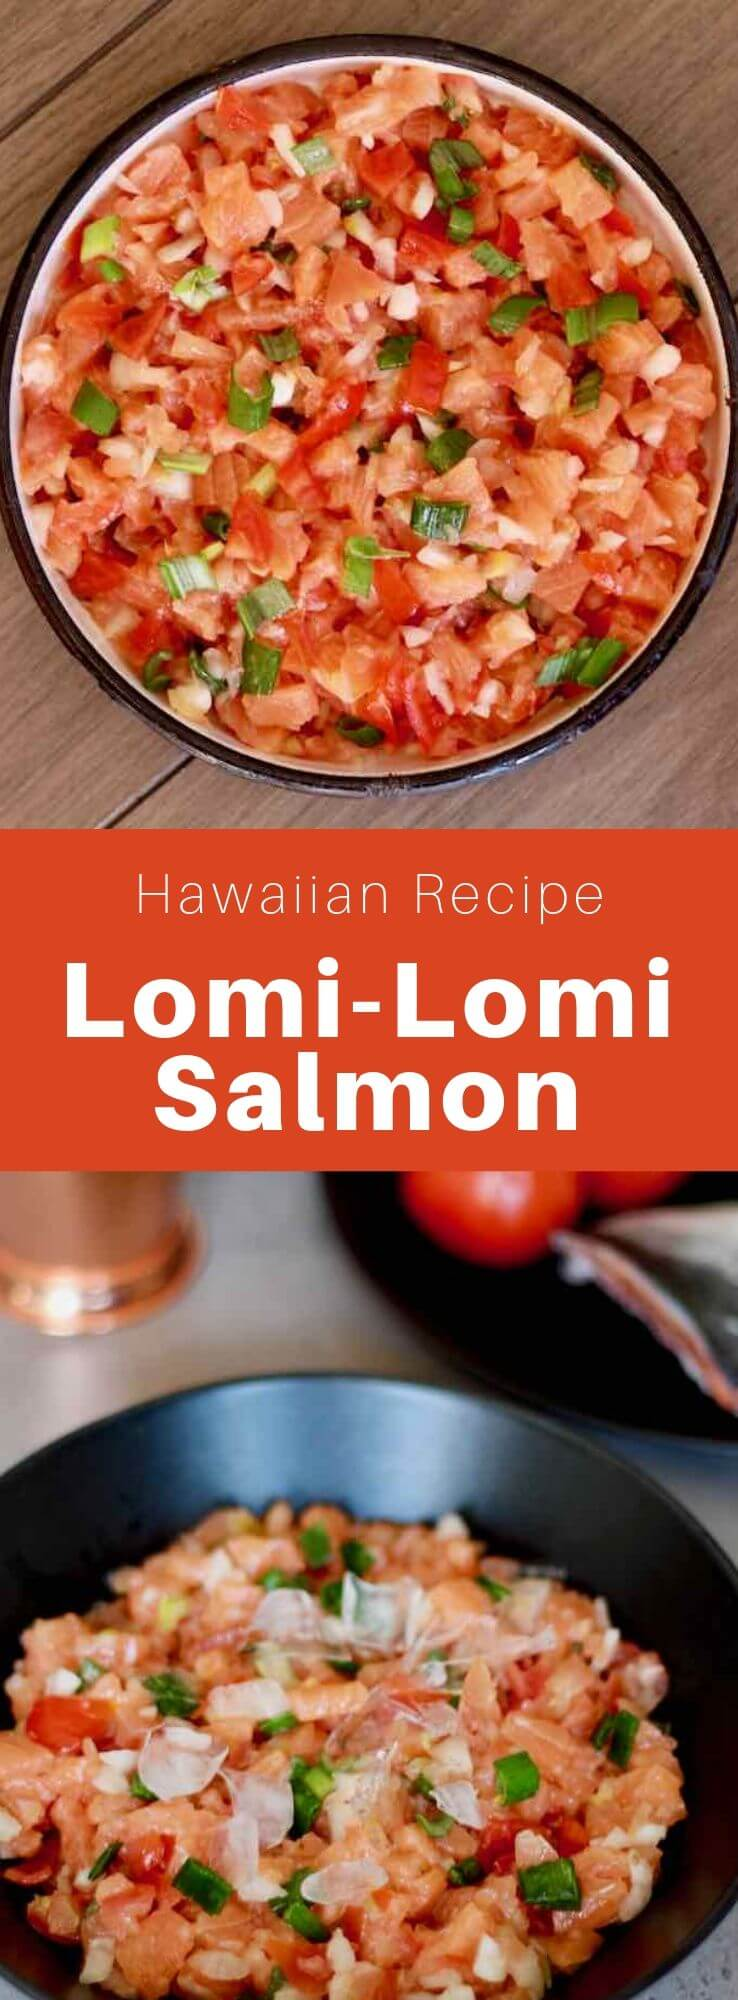 Lomi-lomi is a traditional Hawaiian side dish prepared with salmon and tomato. It was introduced to Hawaii by early Western sailors. #Hawaii #HawaiianRecipe #HawaiianFood #HawaiianCuisine #WorldCuisine #196flavors